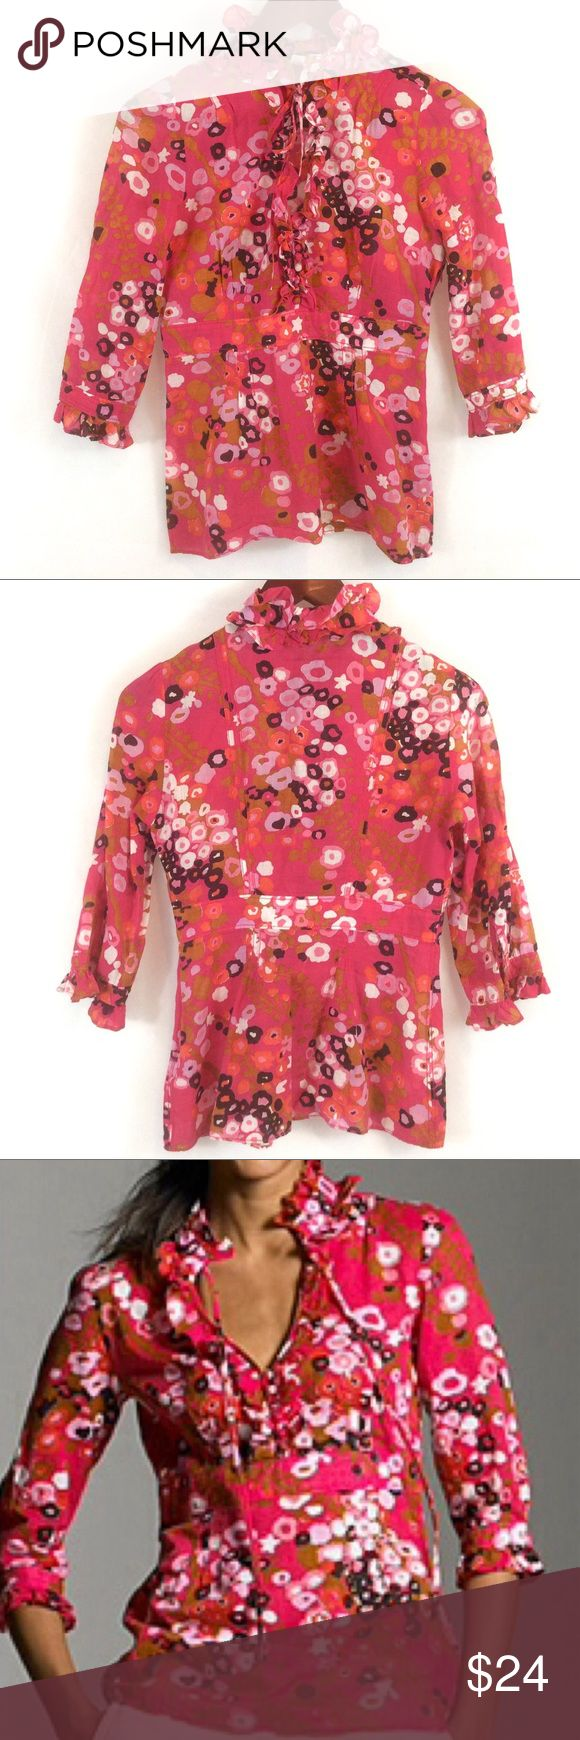 """J Crew Frances Cherry Blossom Blouse J. Crew Women's Frances Cherry Blossom half sleeve top Pullover discreet side zipper. High Ruffle neckline with tie option. High waist. Cotton Ramie blend, feels like a thin Linen.  Fantastic condition, you may mistake for brand new.  Labeled a size 4, exact measurements: Bust: 34"""" Length: 25"""" Waist: 28""""  ---> Would also look great on an XS <--- RN 77388 Style 91804 J. Crew Tops Blouses"""